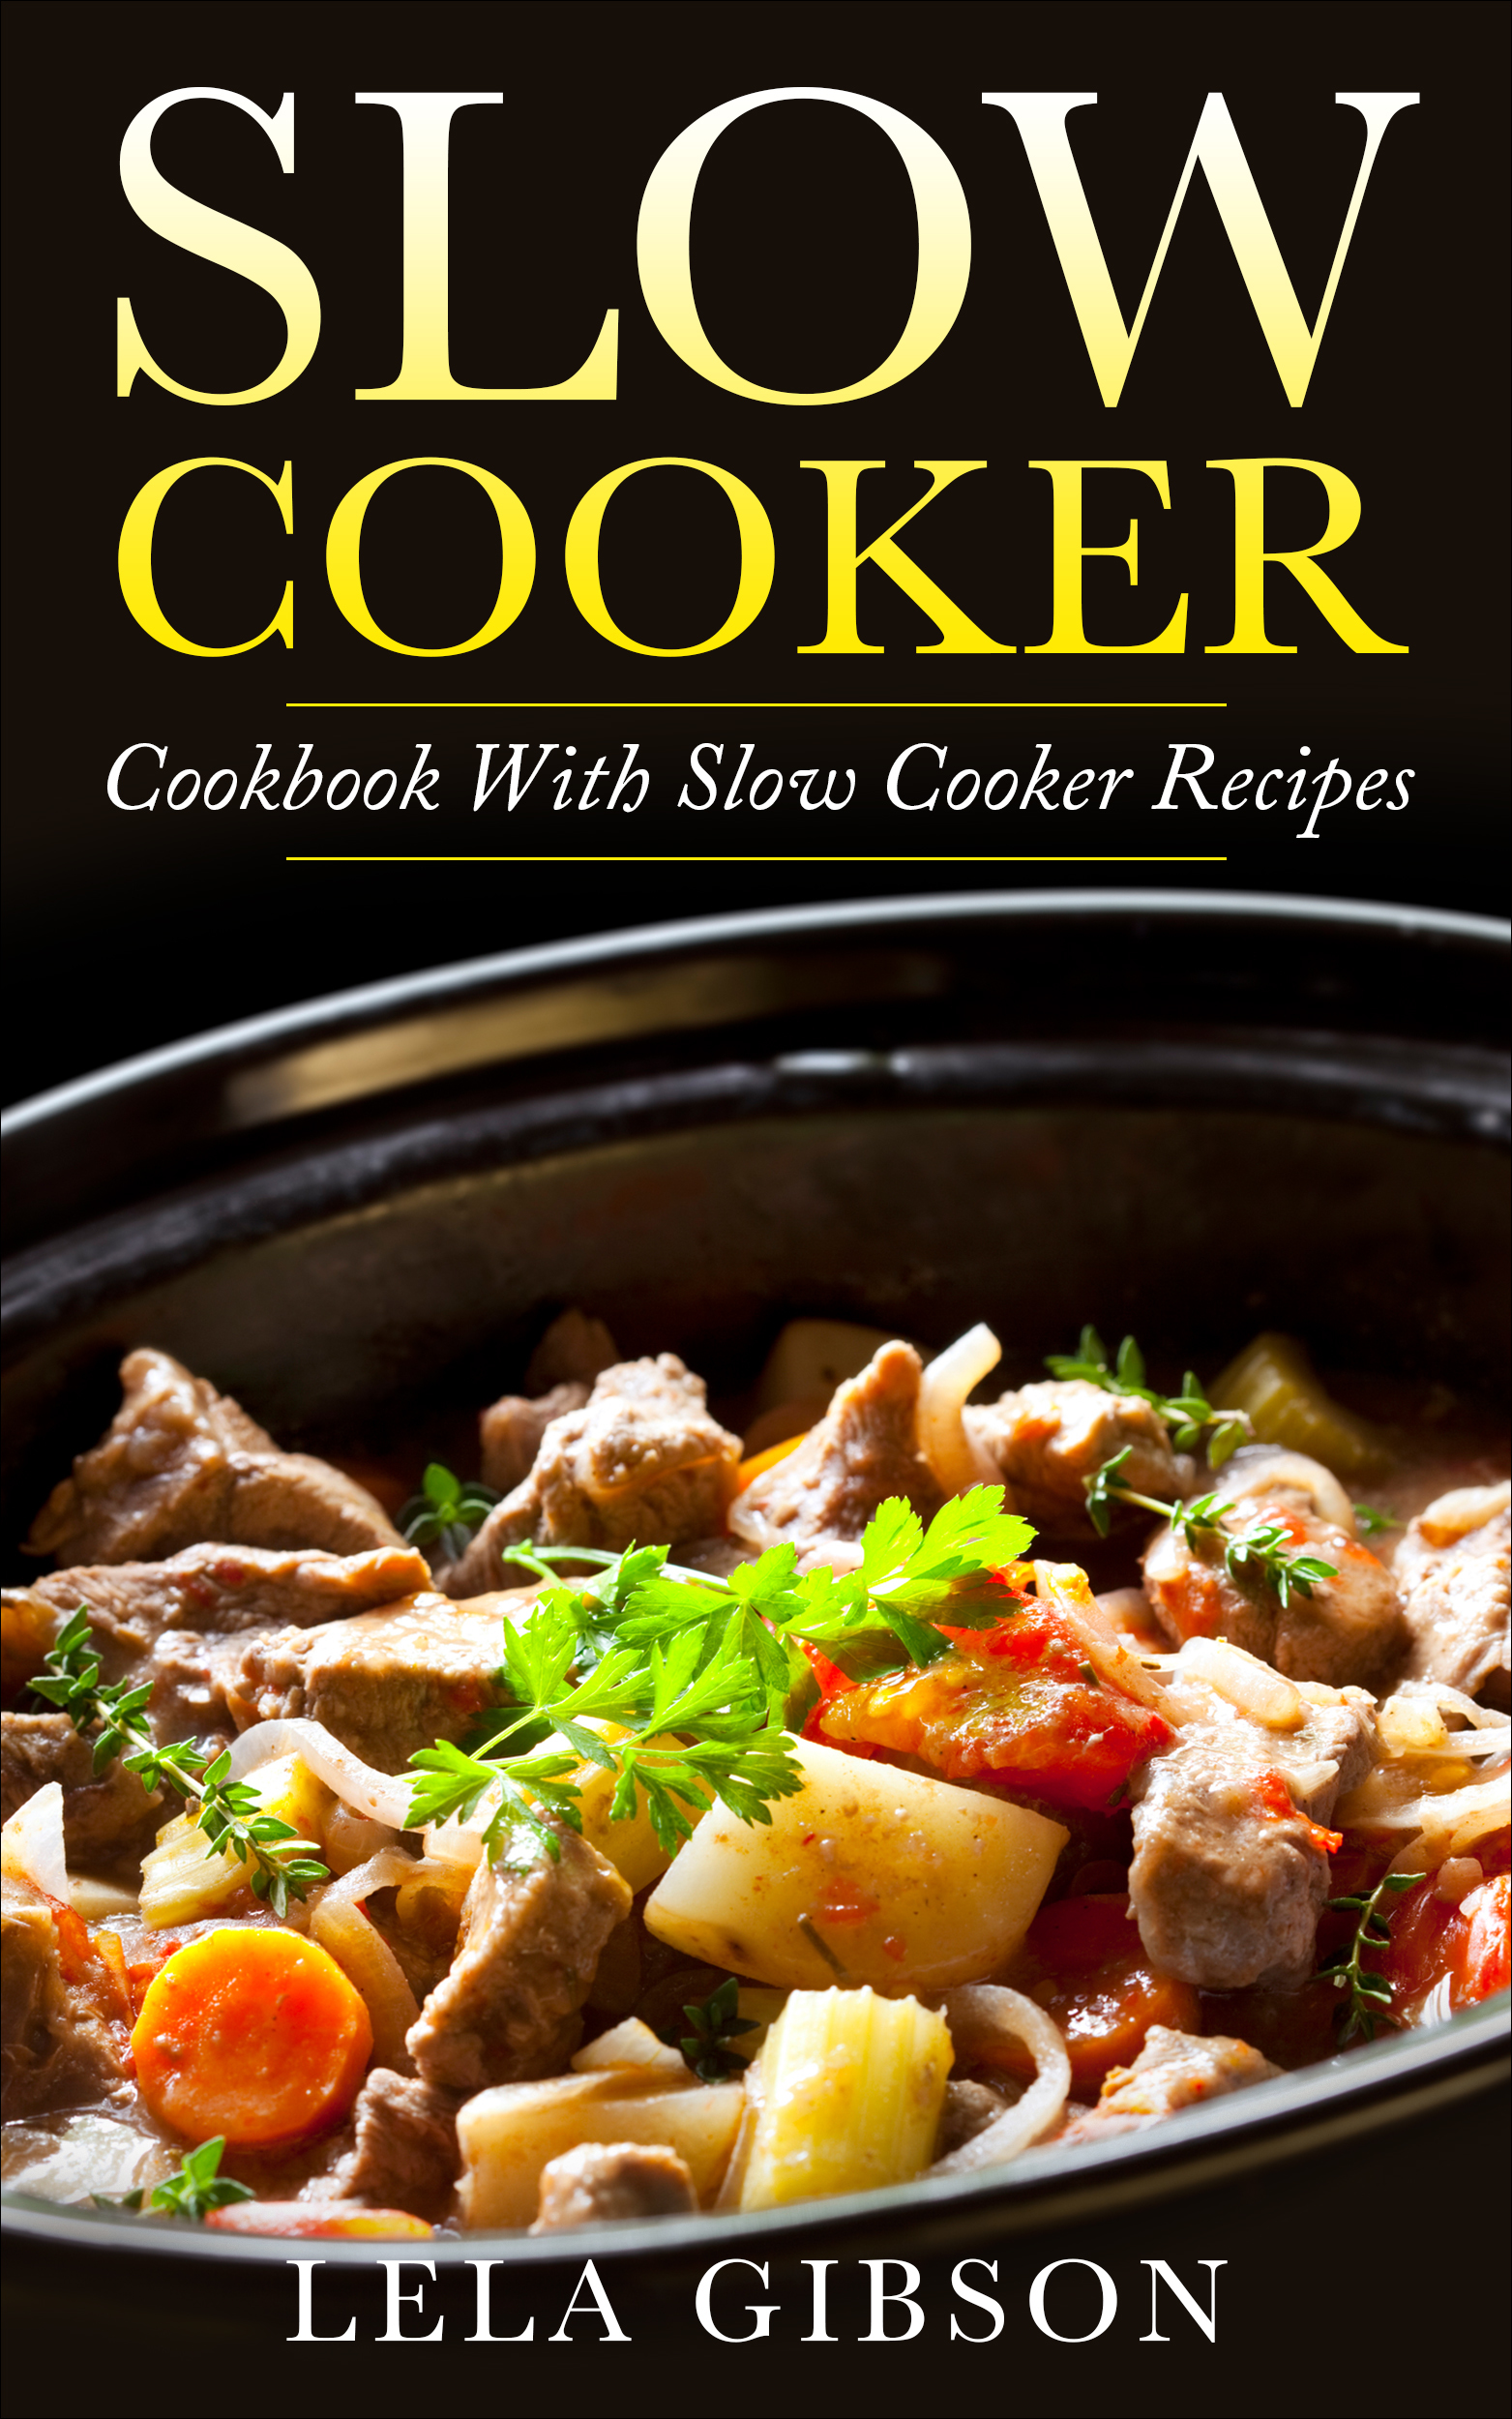 Slow Cooker: Cookbook with Slow Cooker Recipes  by  Lela Gibson